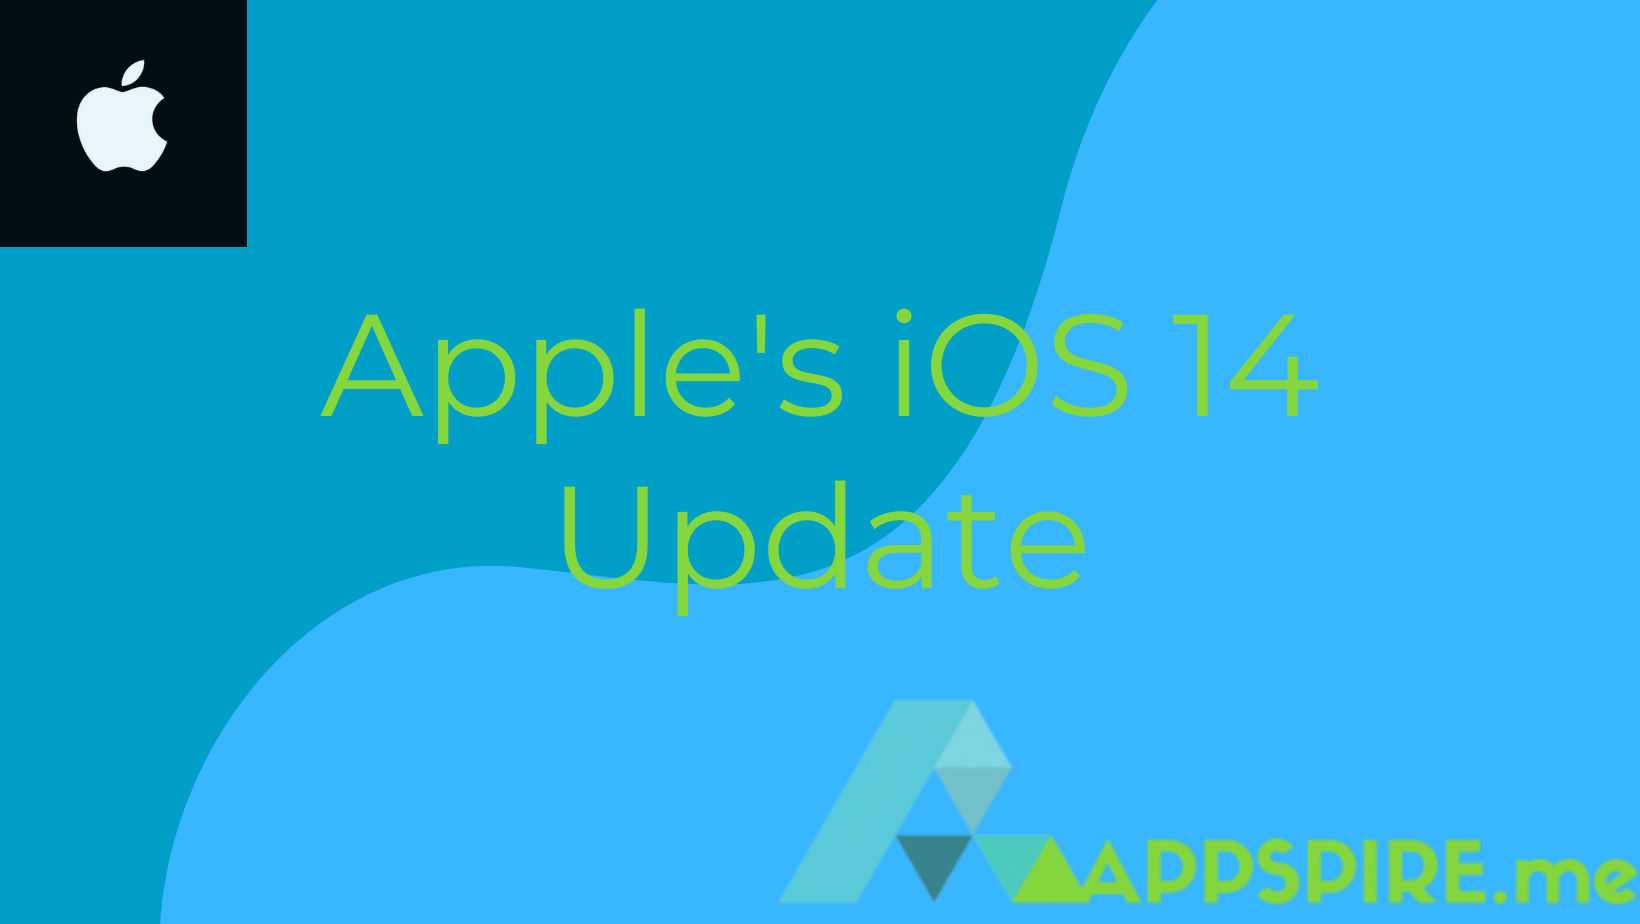 Everything About Apple's iOS 14 Update